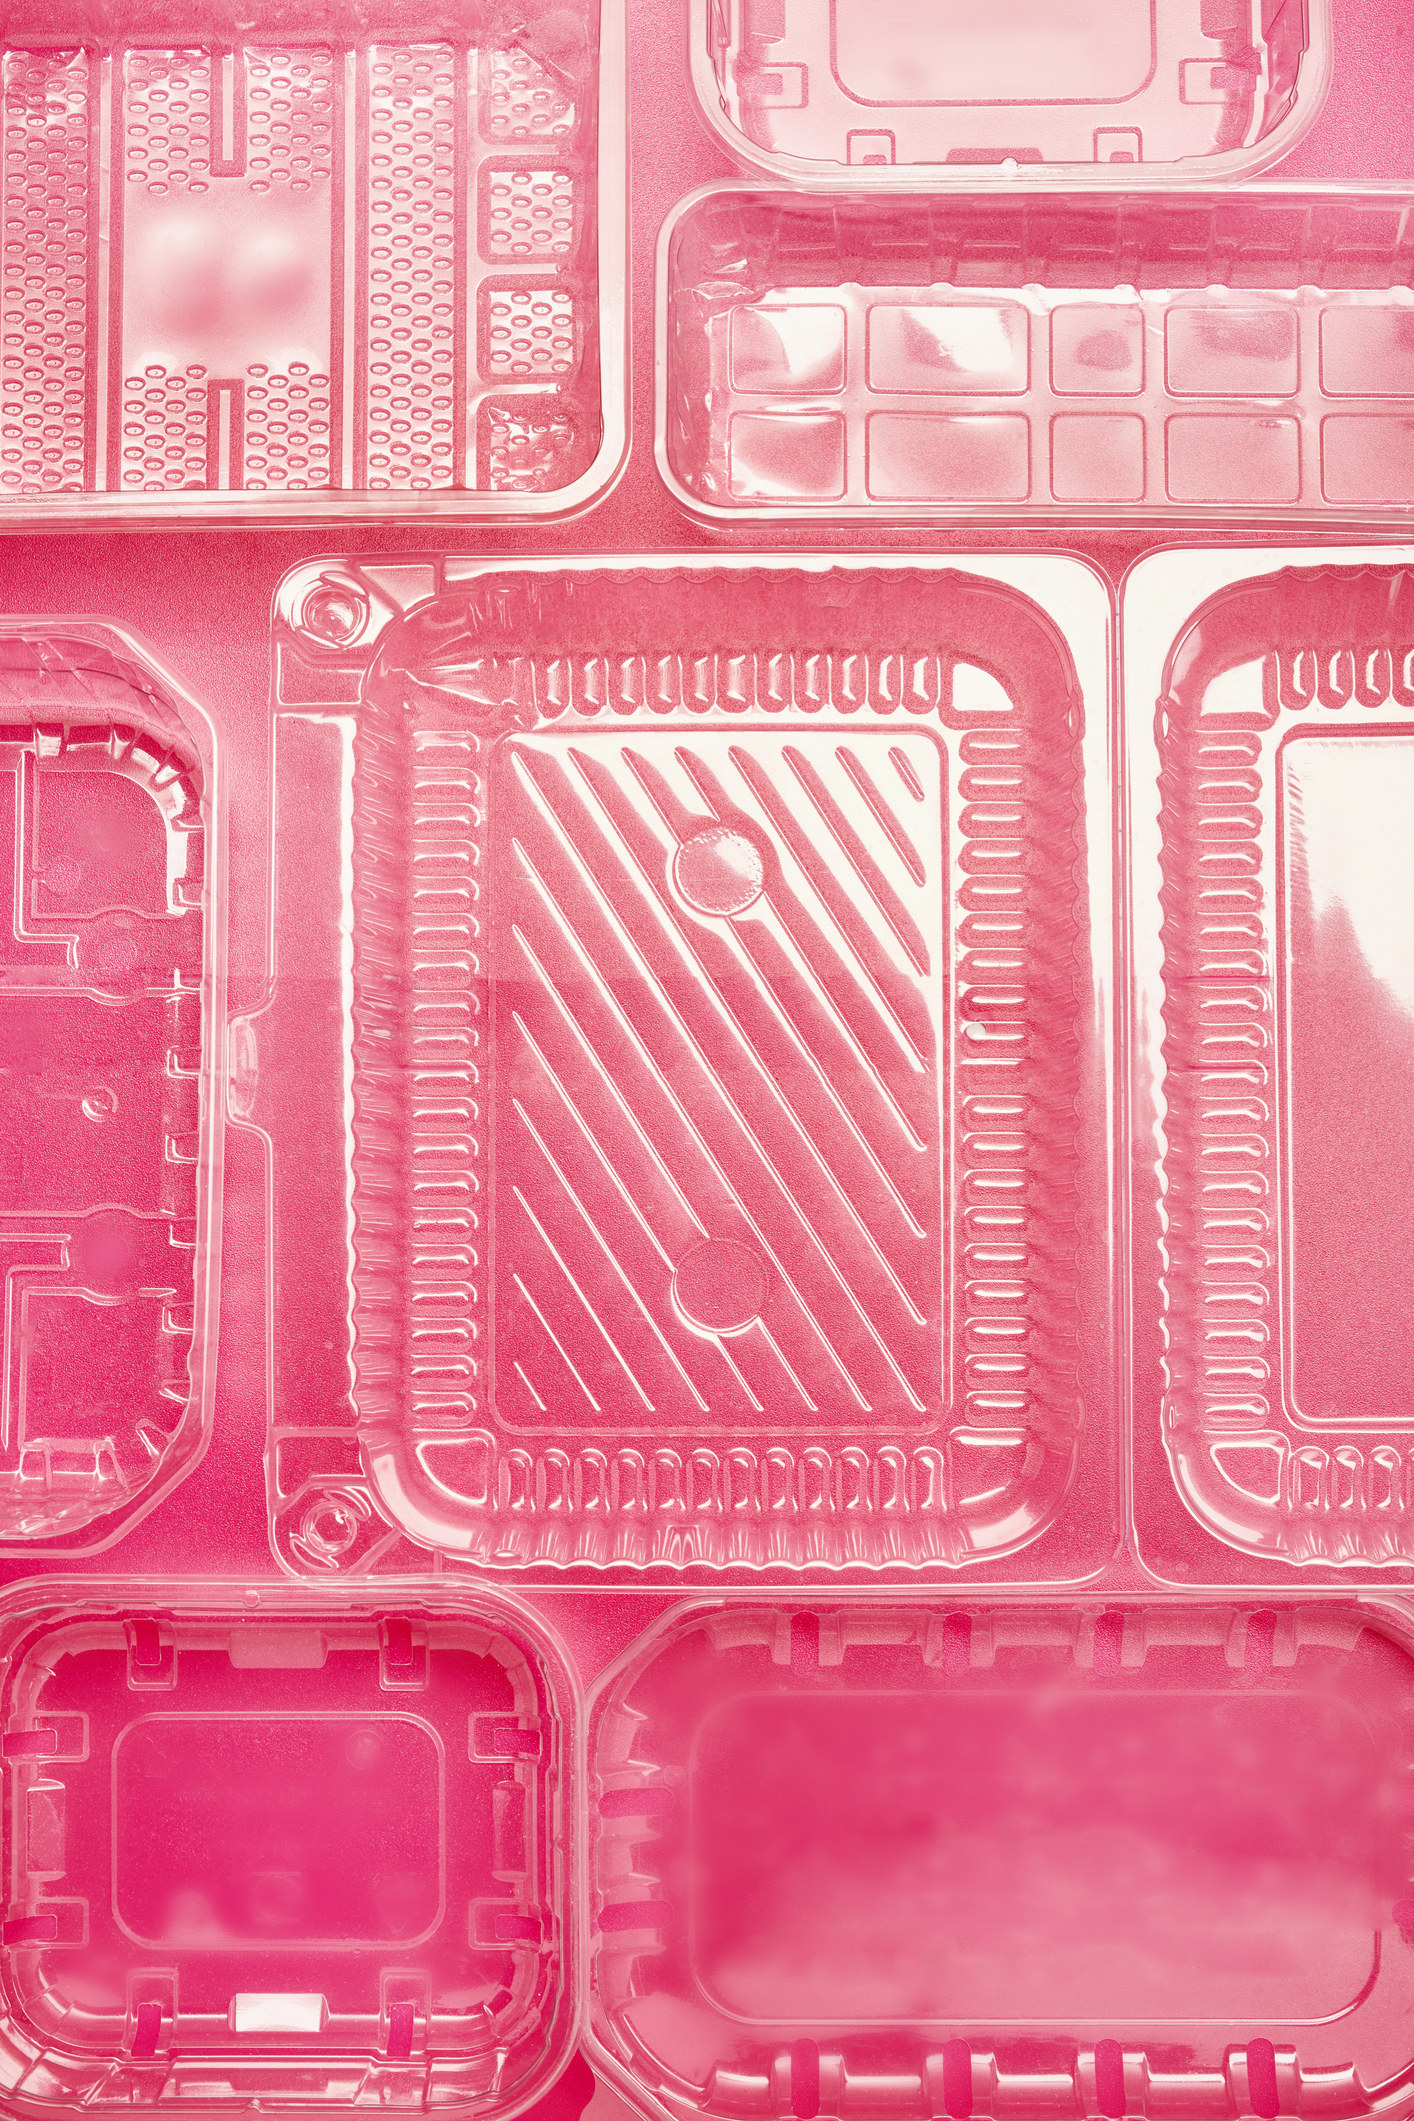 Overhead view of plastic containers of different sizes lined up together